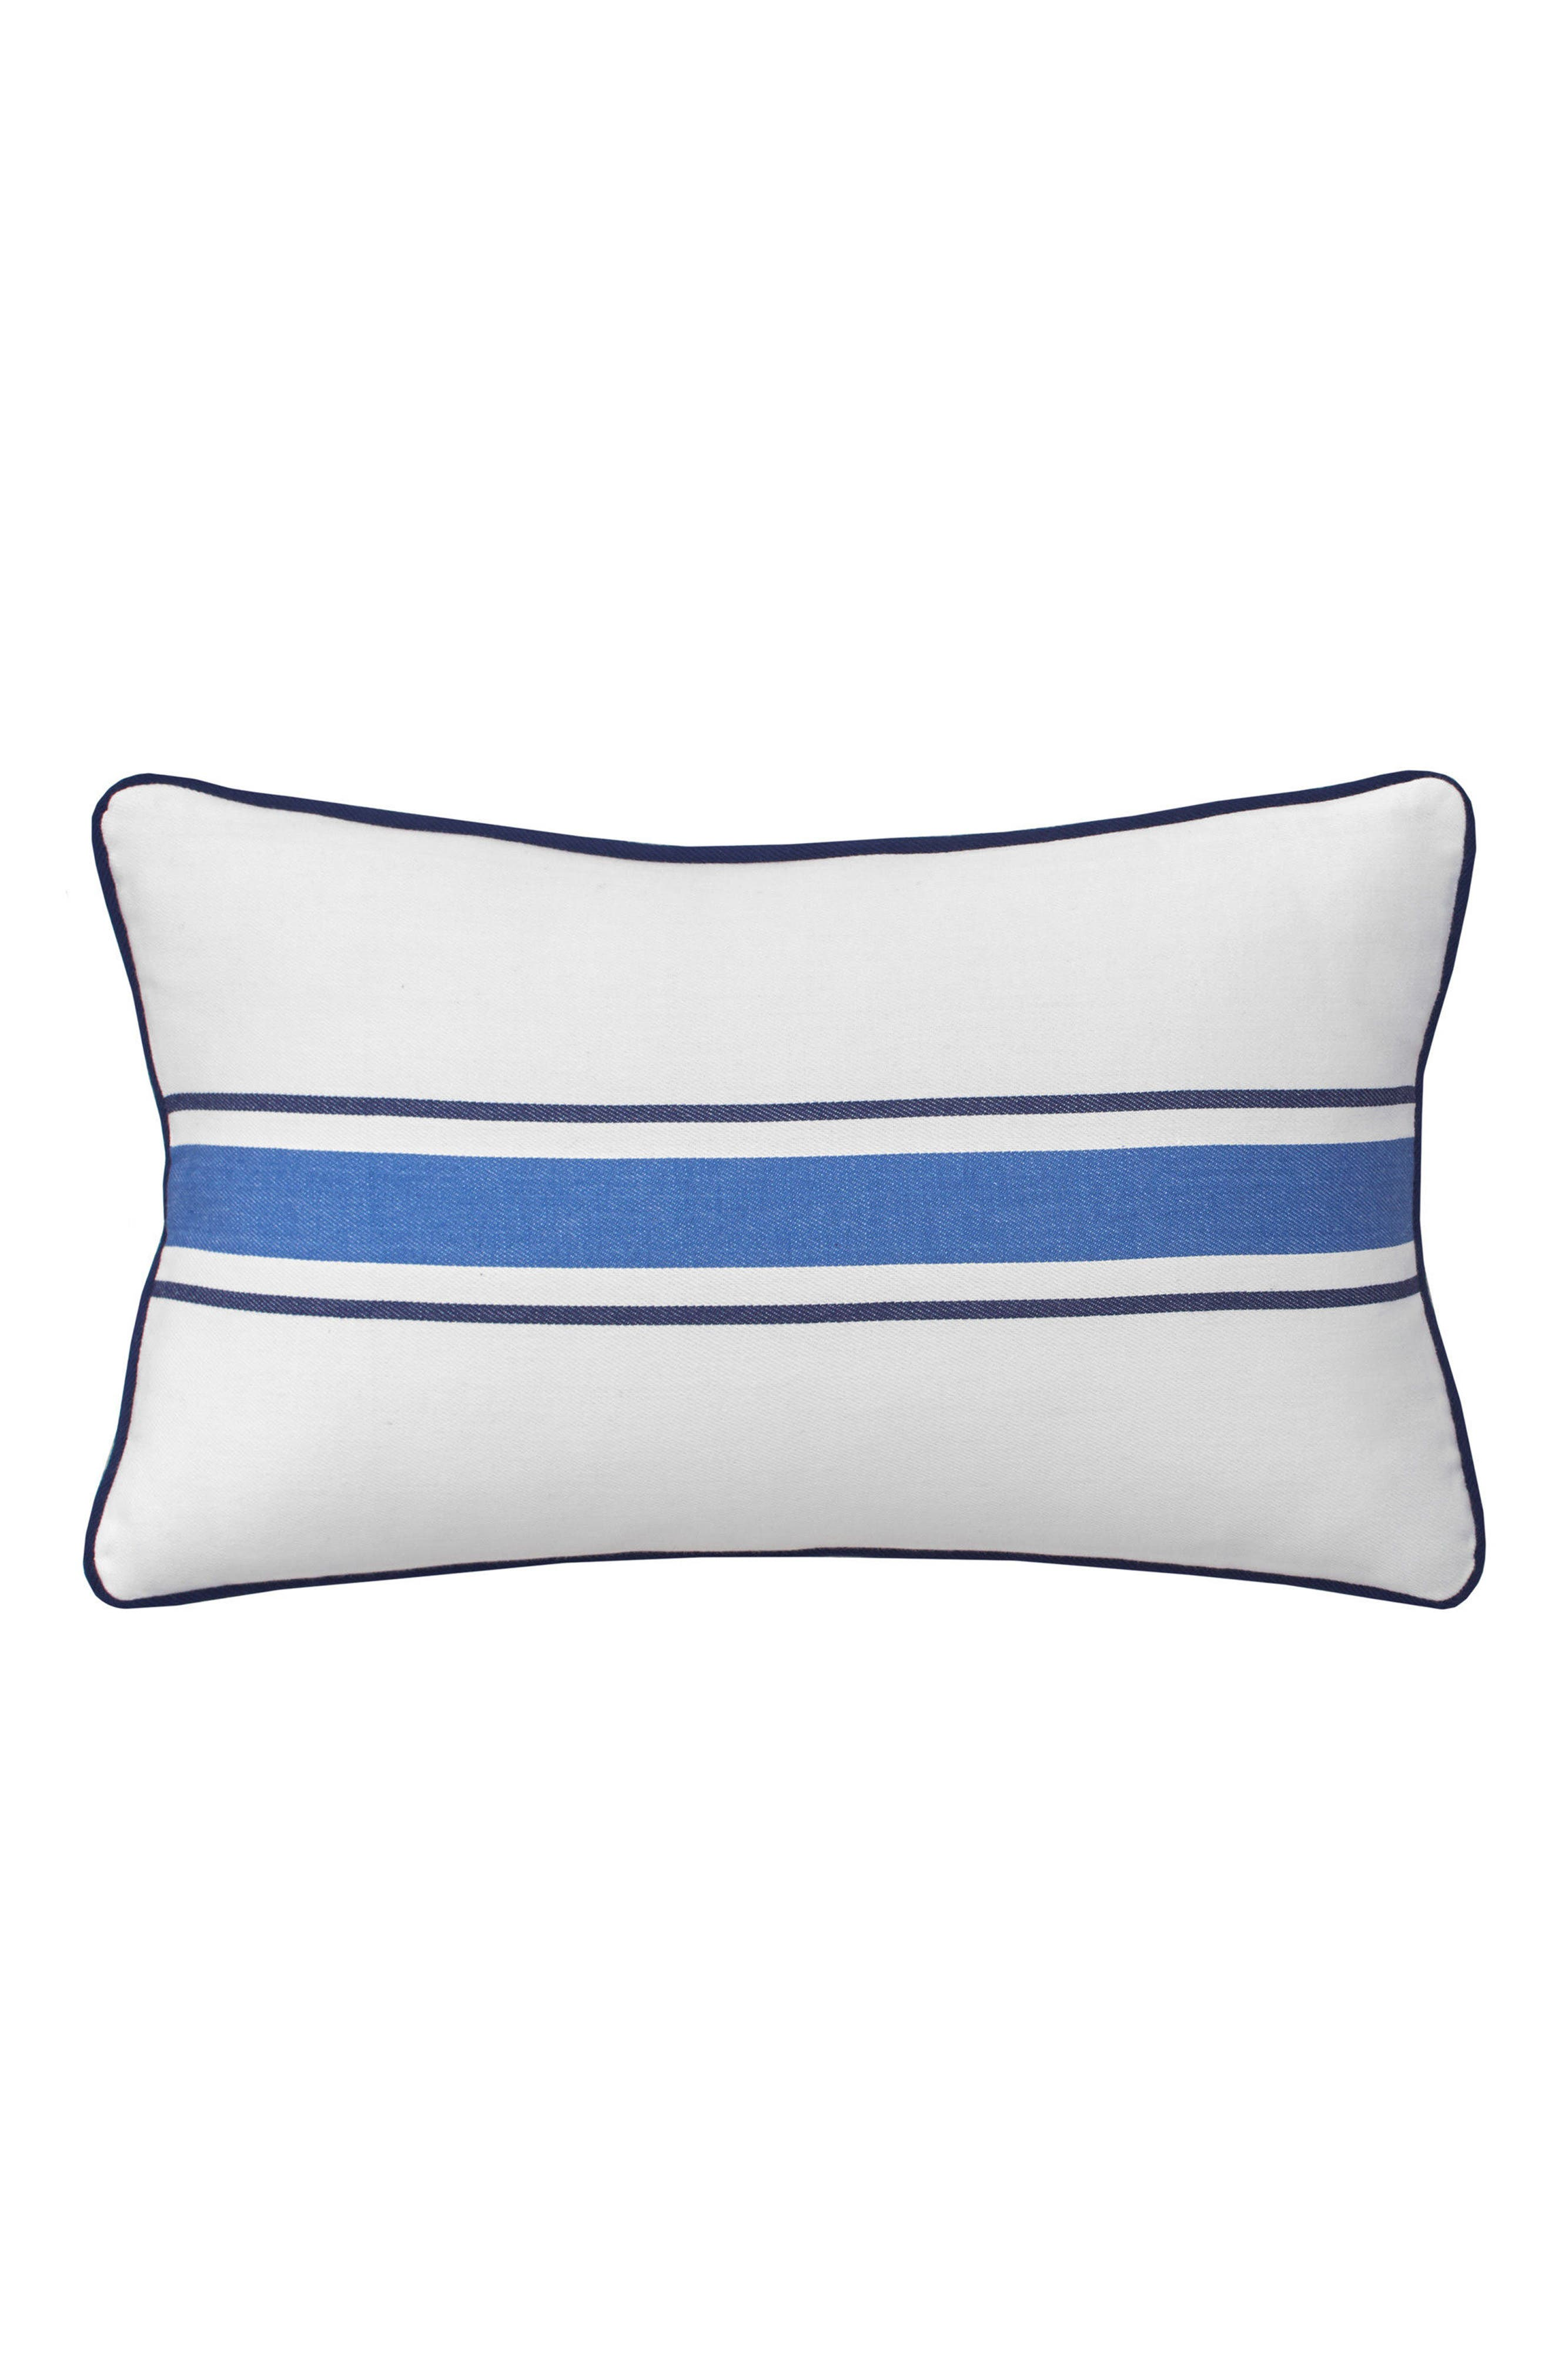 Main Image - Southern Tide Dock Street Stripe Accent Pillow